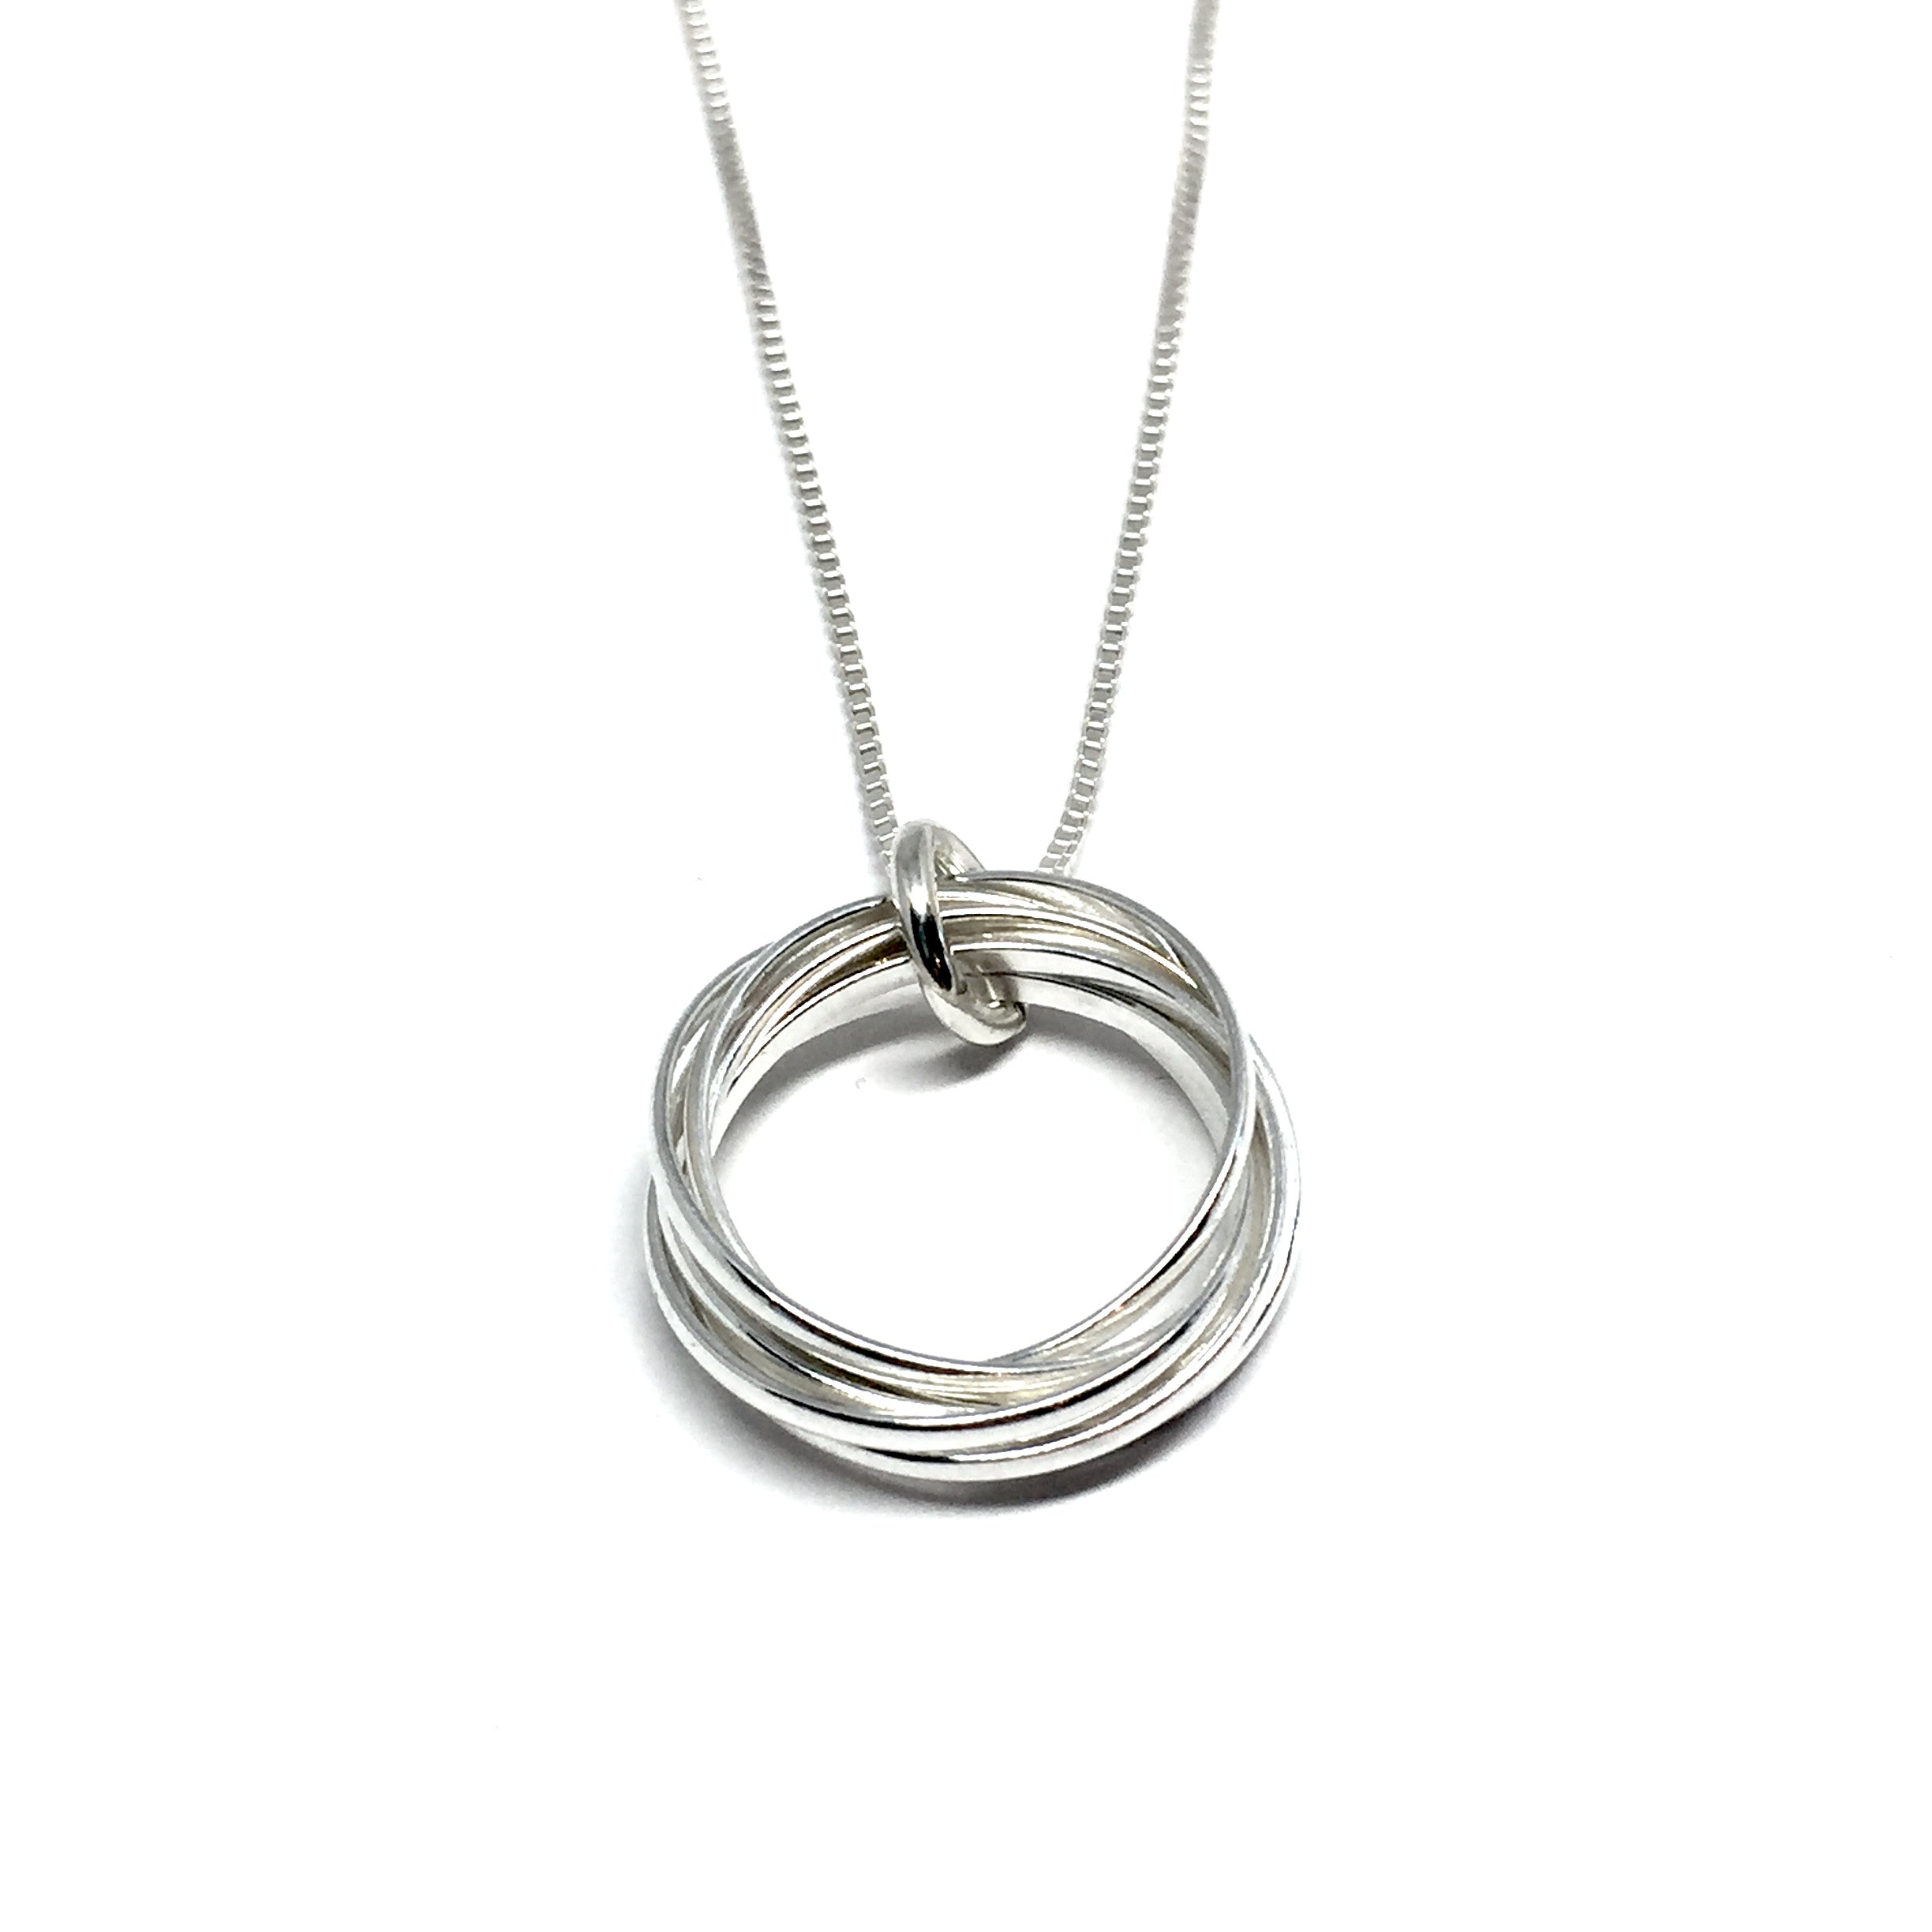 loop card ringette magic necklace on polished solechette products holder silver ring